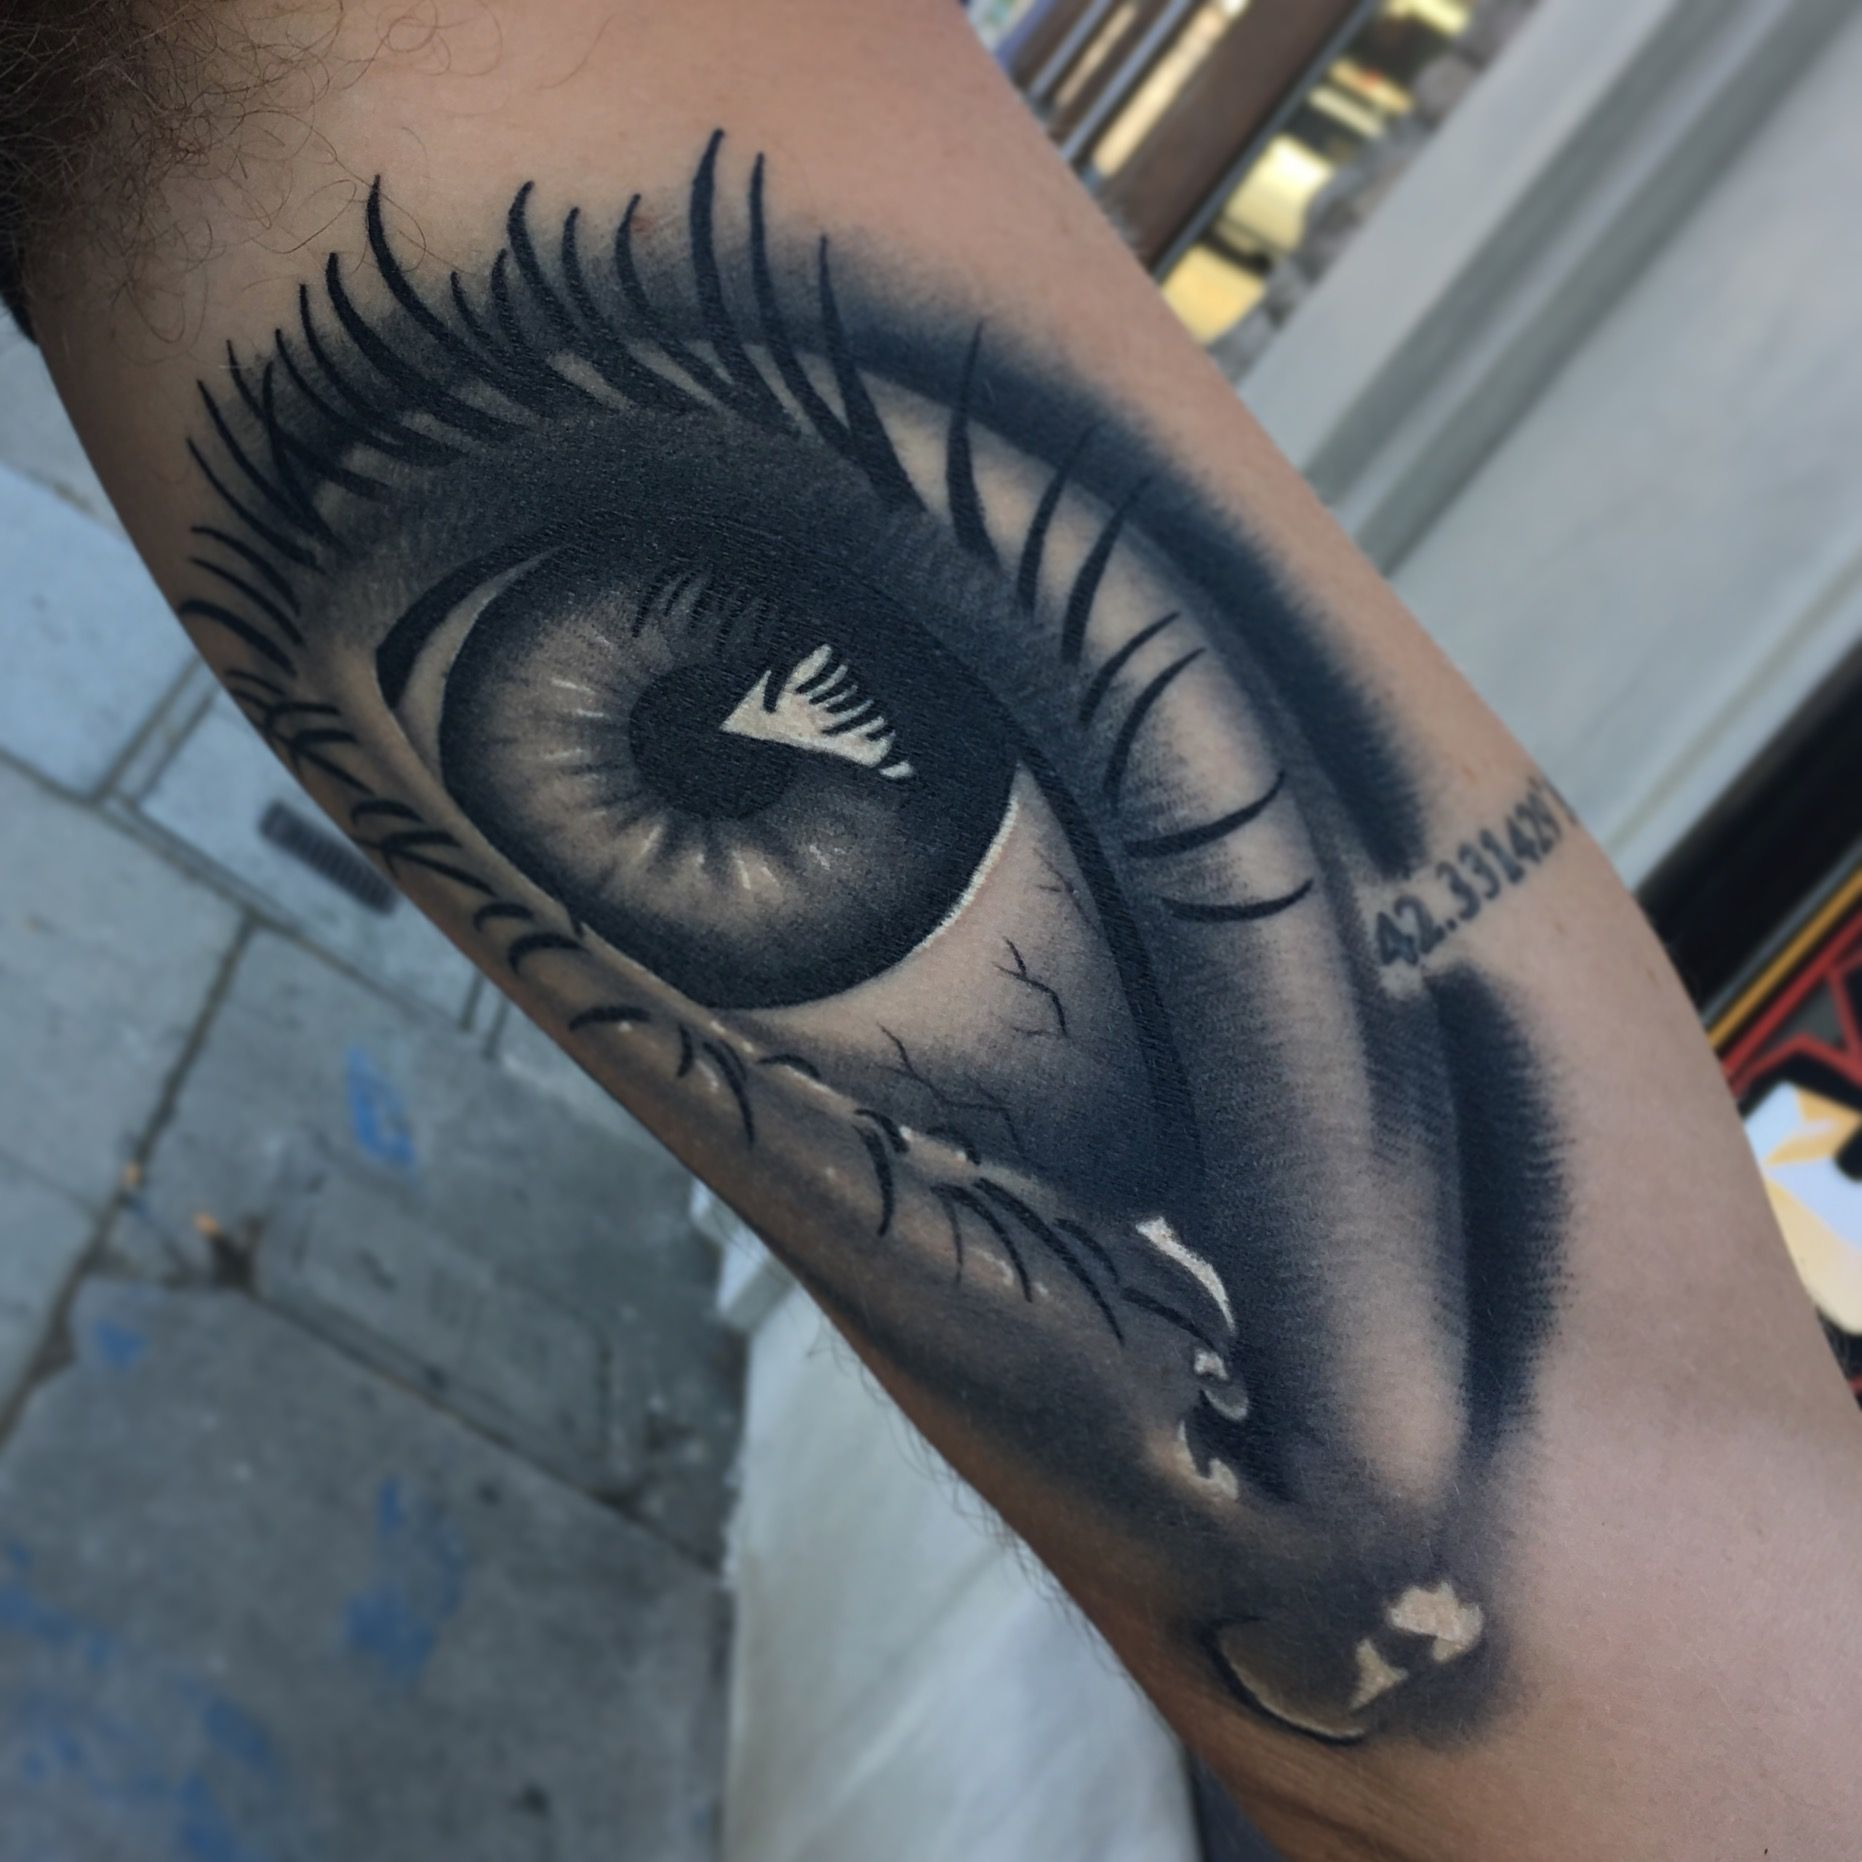 Black and Grey Eye Tattoo on inner arm. Eye tattoos. Best